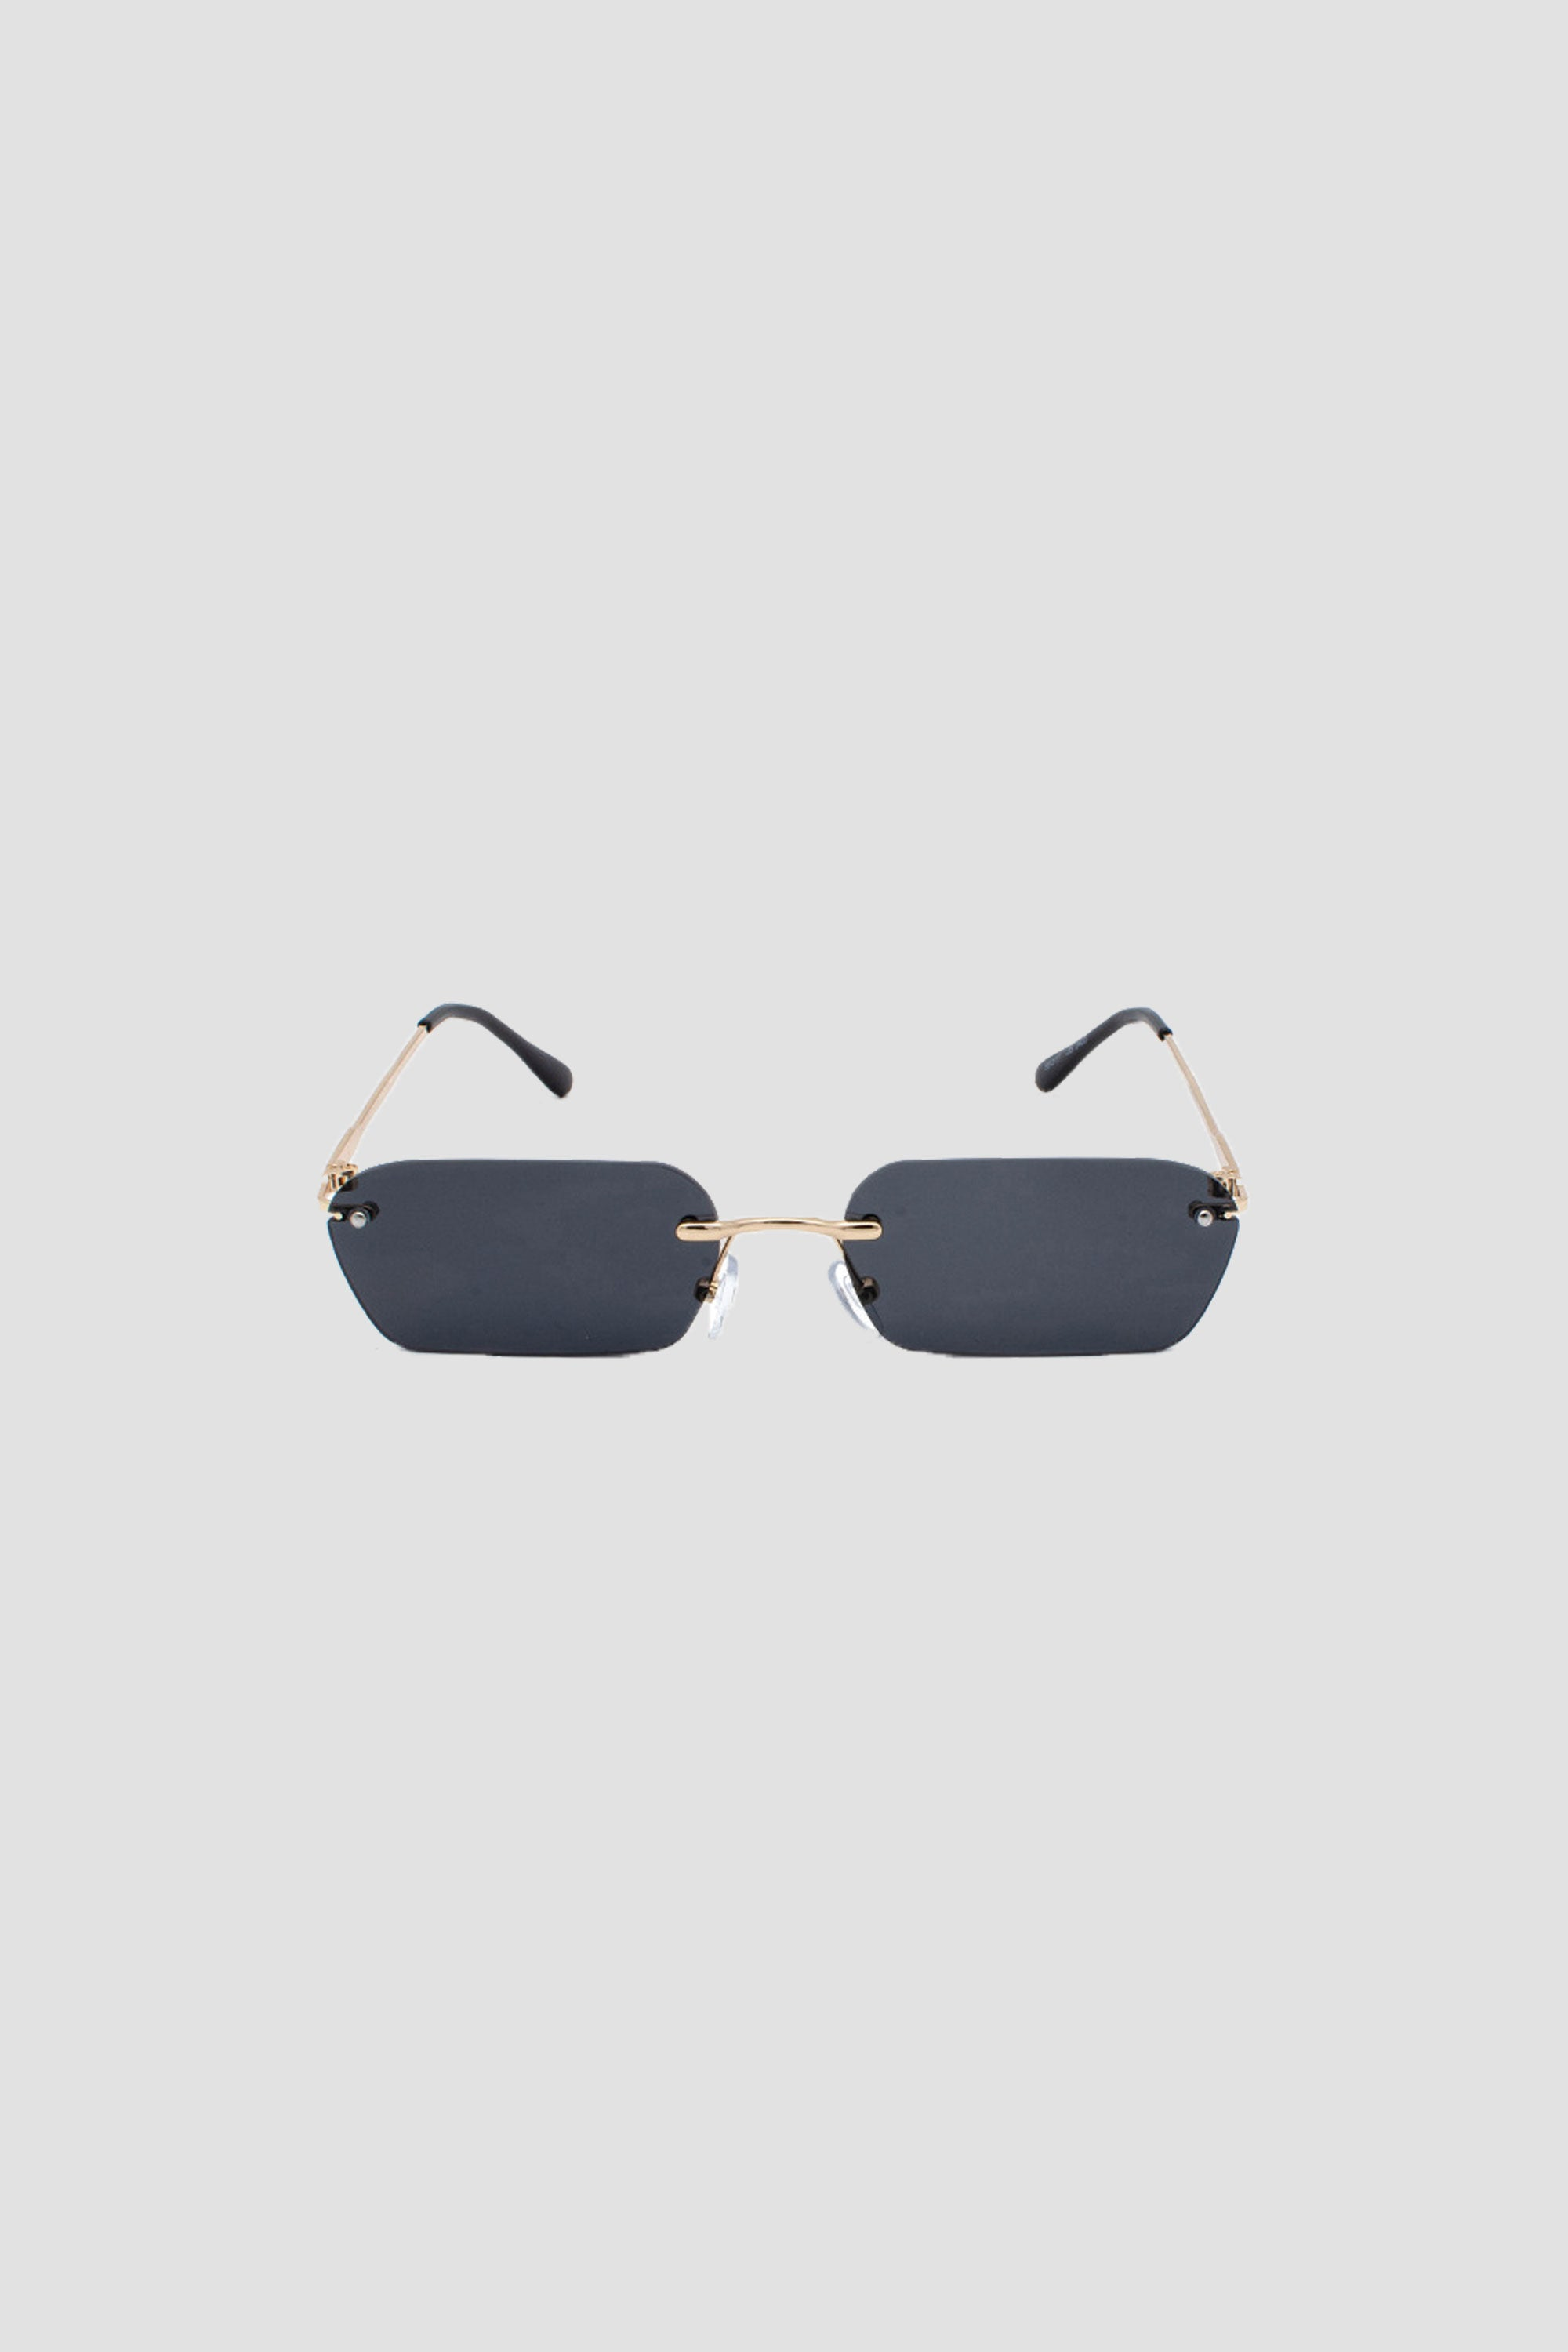 Shadow Black Frames